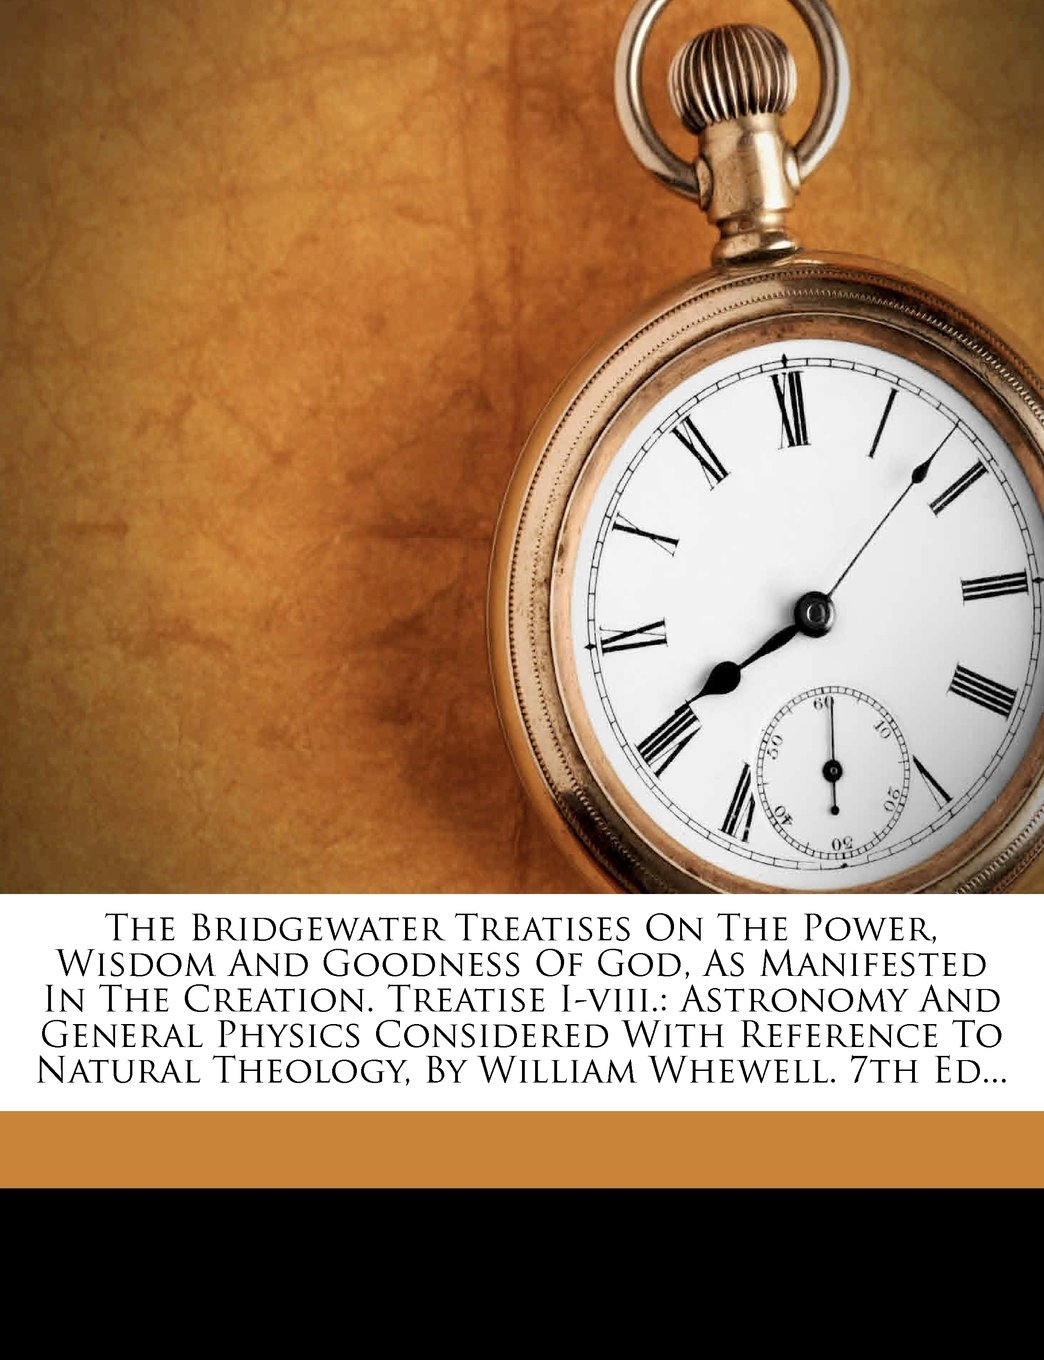 Download The Bridgewater Treatises On The Power, Wisdom And Goodness Of God, As Manifested In The Creation. Treatise I-viii.: Astronomy And General Physics ... Theology, By William Whewell. 7th Ed... pdf